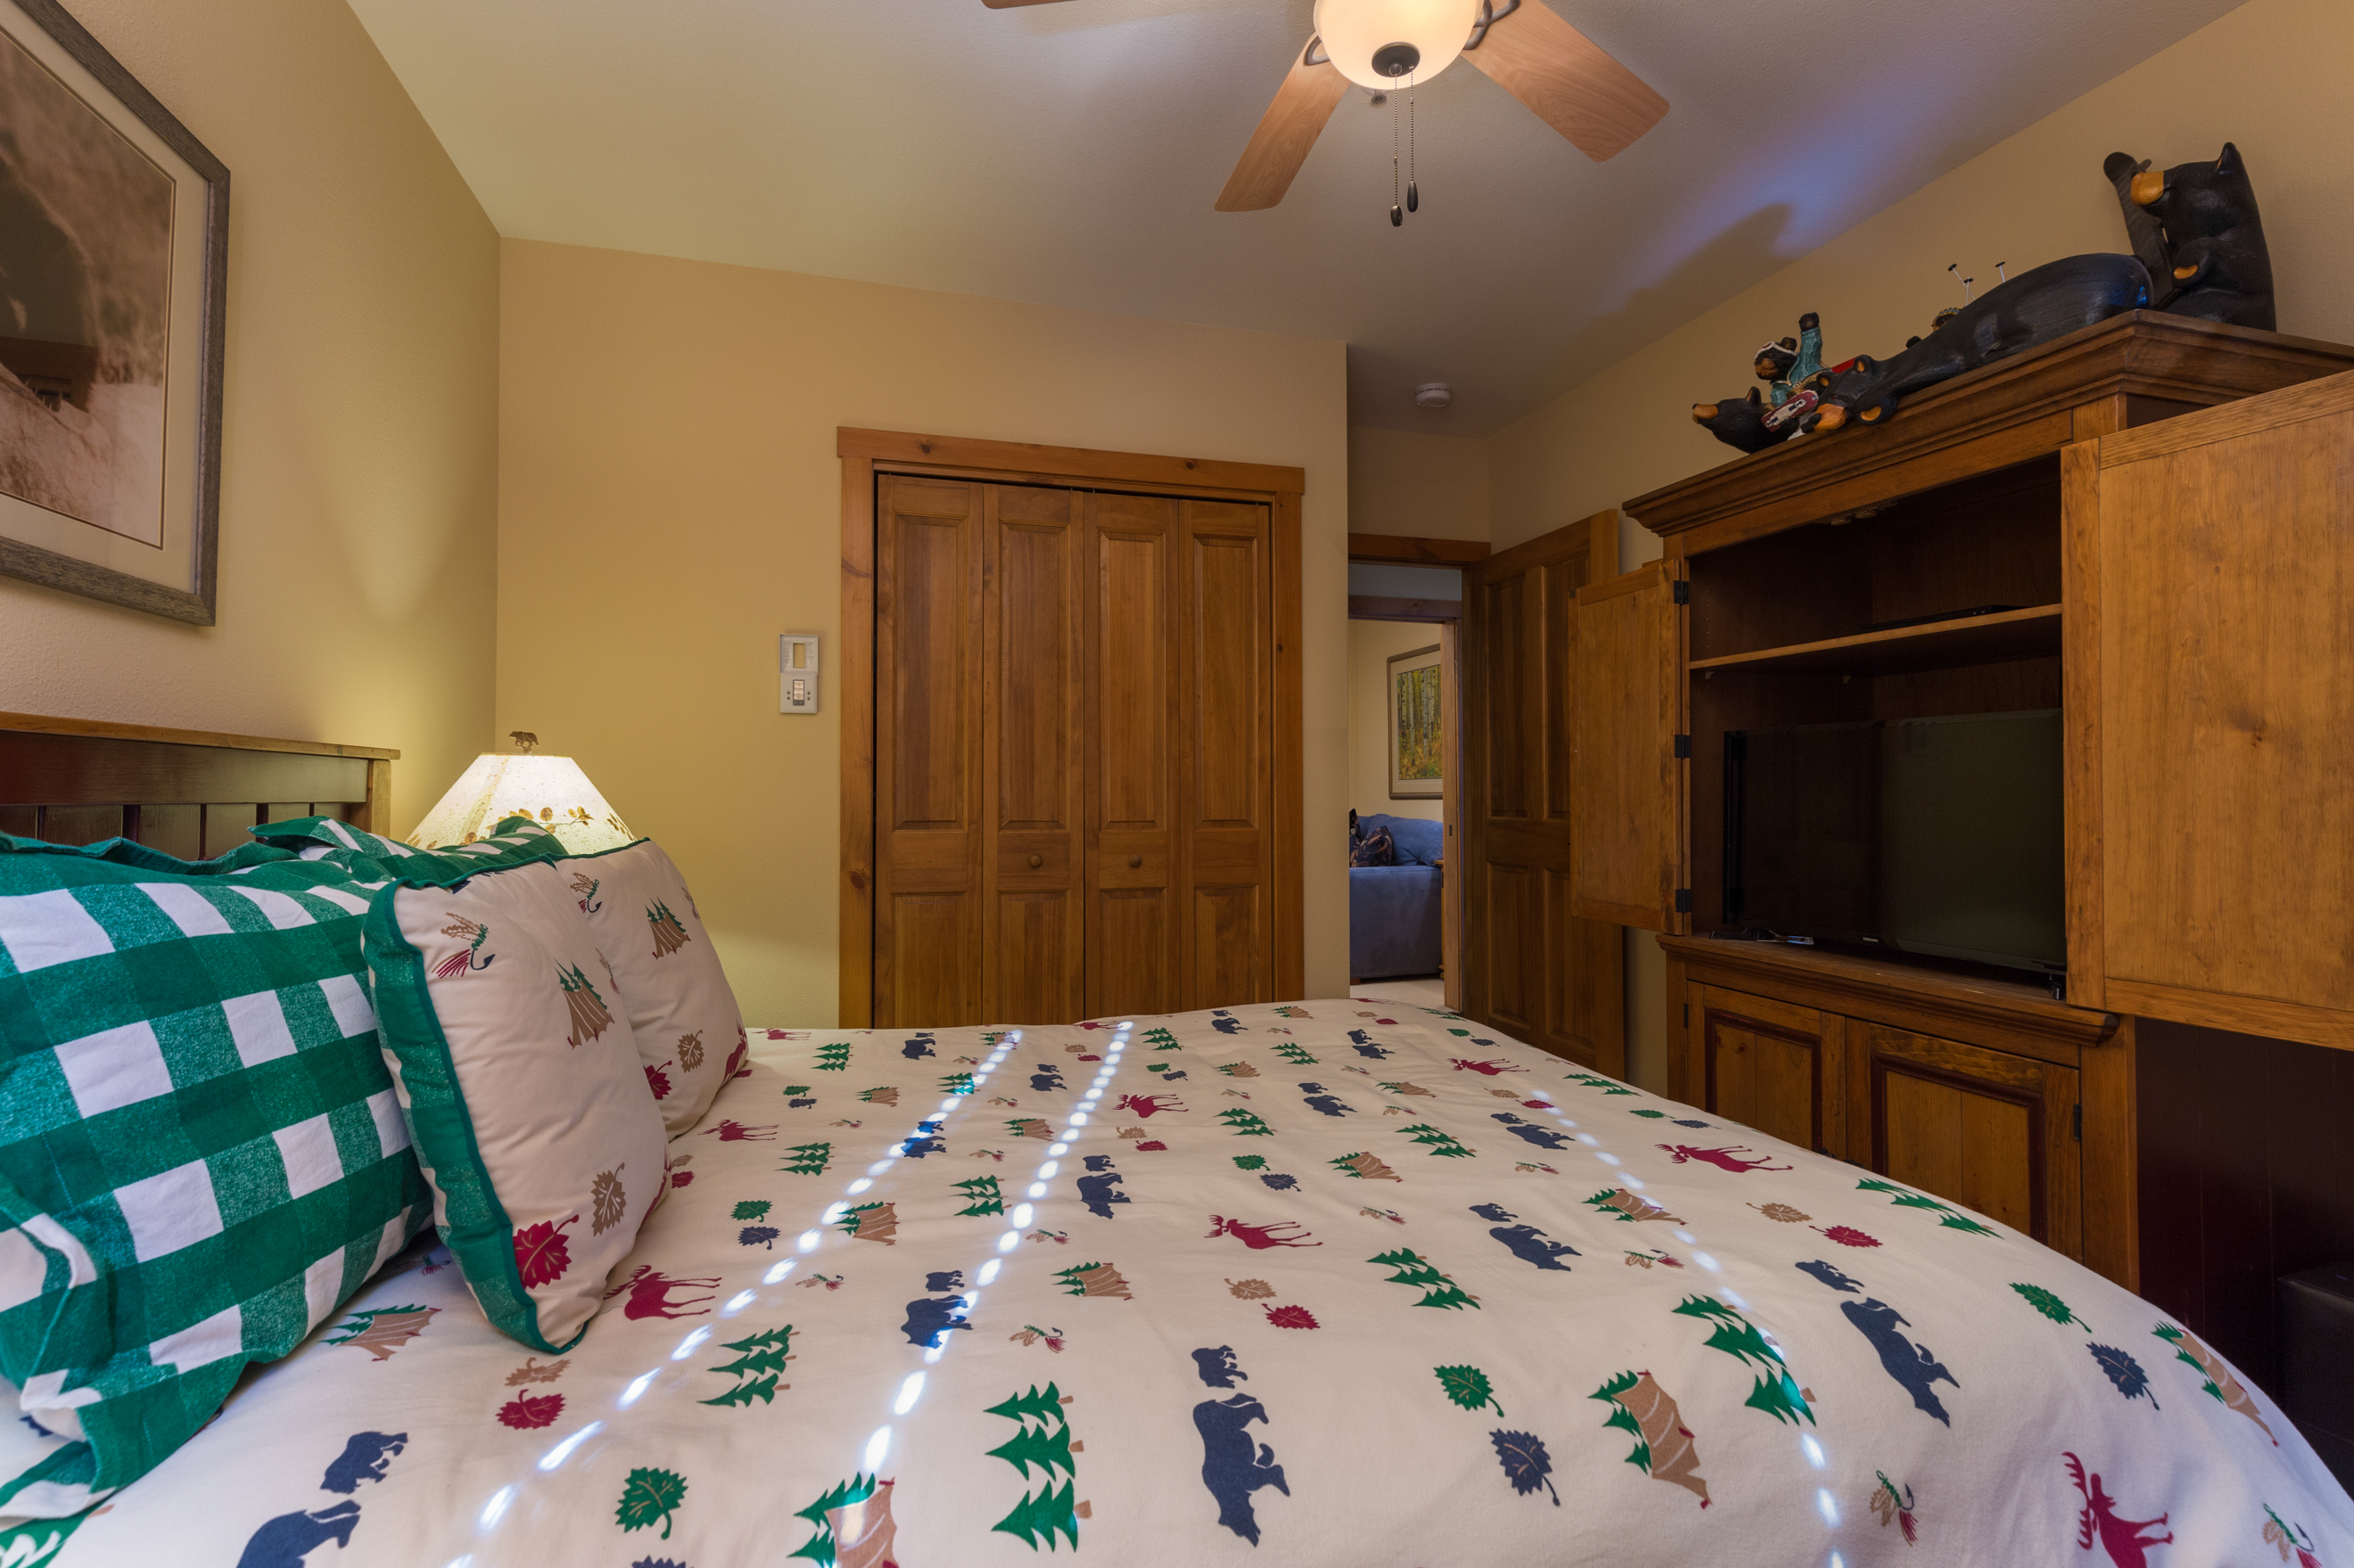 The first guest bedroom features a queen-sized bed and a flat screen TV.